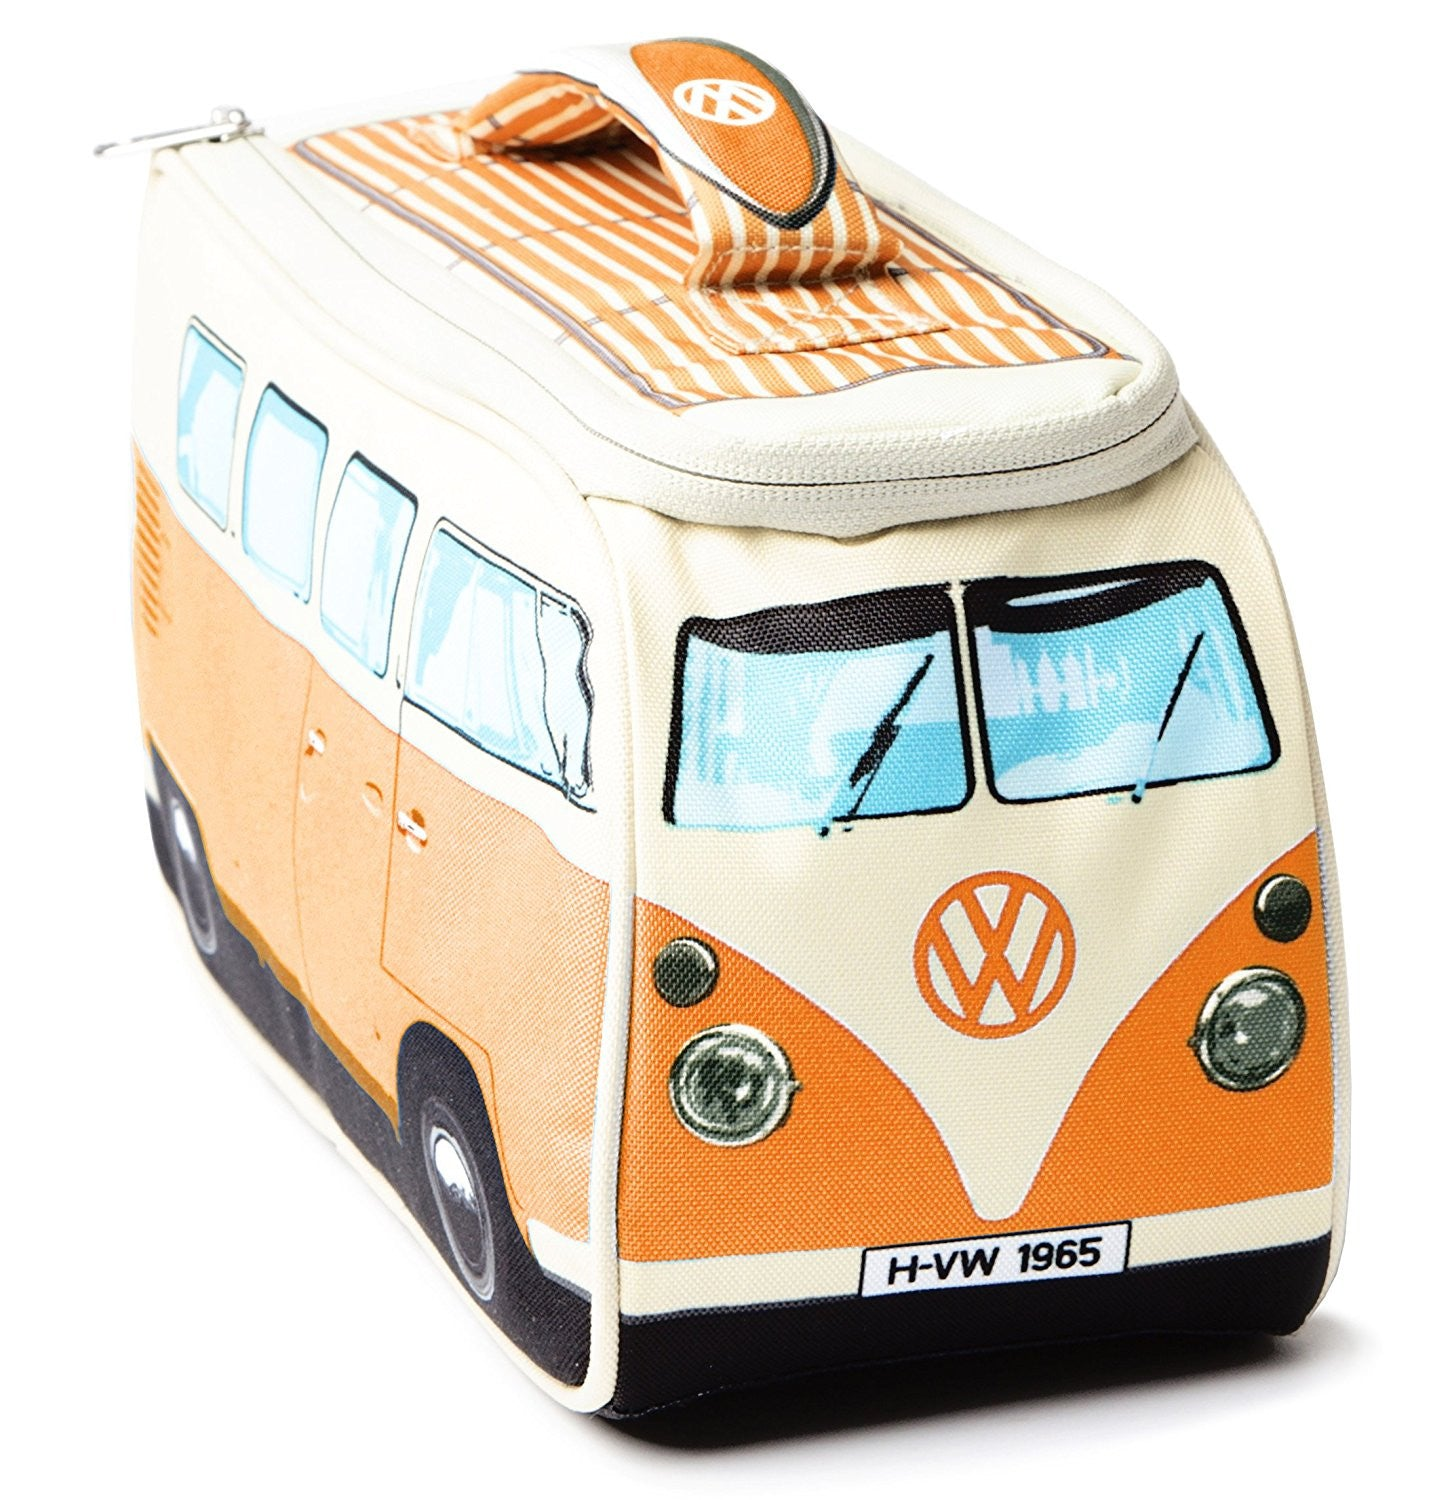 melissa campers future by to transporter pinterest on beetles cars back crush and daams vans pin volkswagen bus vw camper the cortland finnegan custom